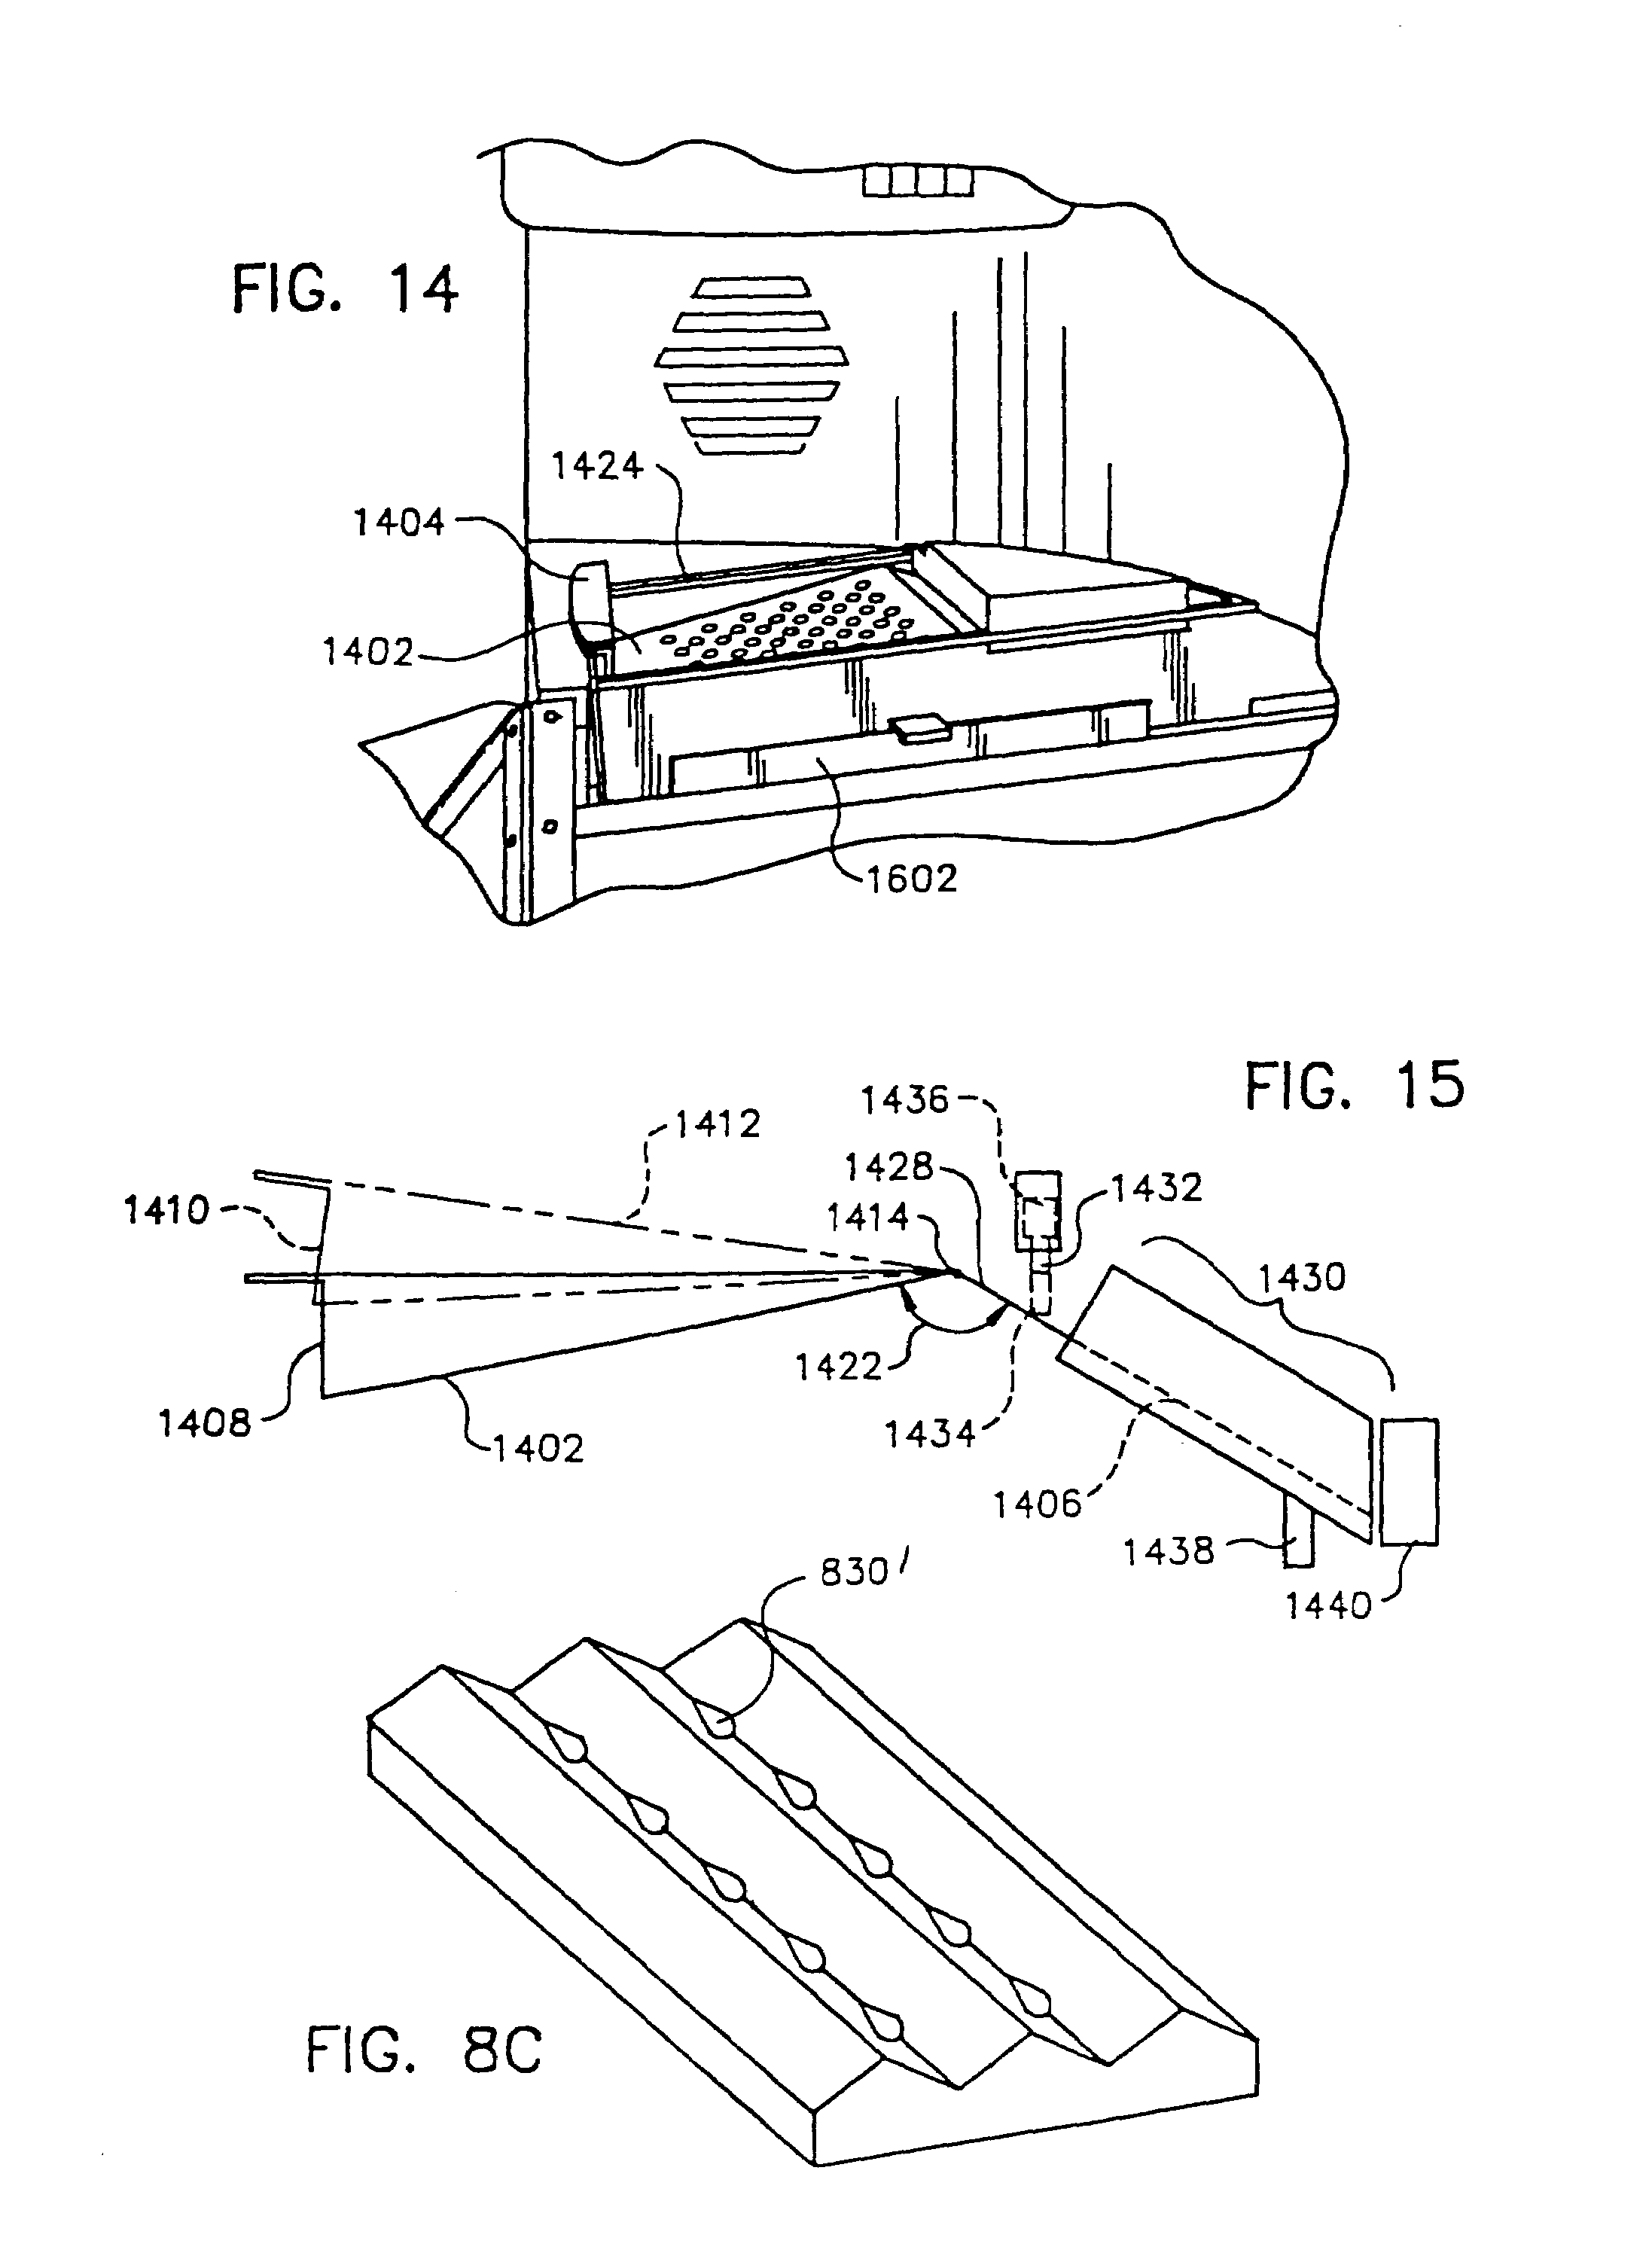 patent us 7 131 580 b2 Serial Number Search patent